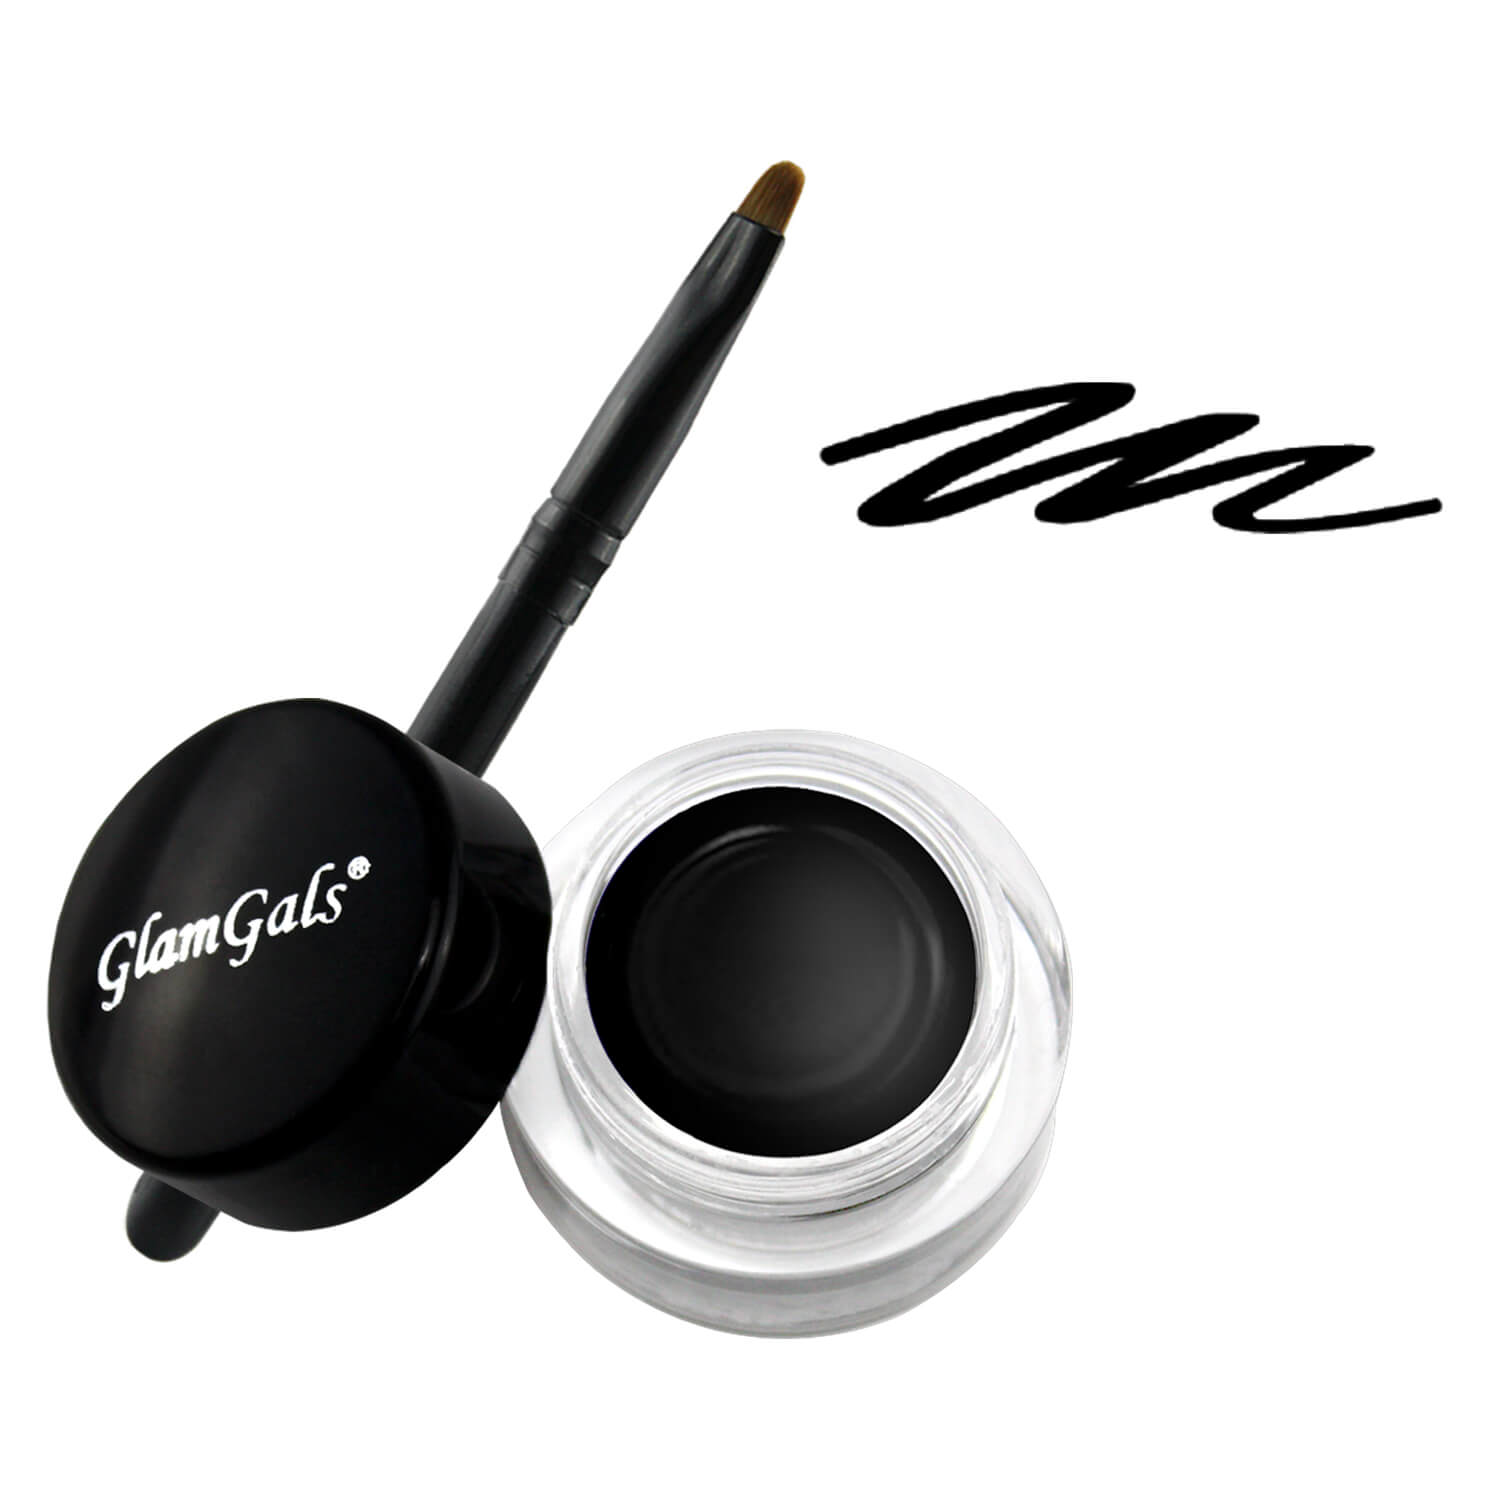 GlamGals Long Wear Gel Eyeliner